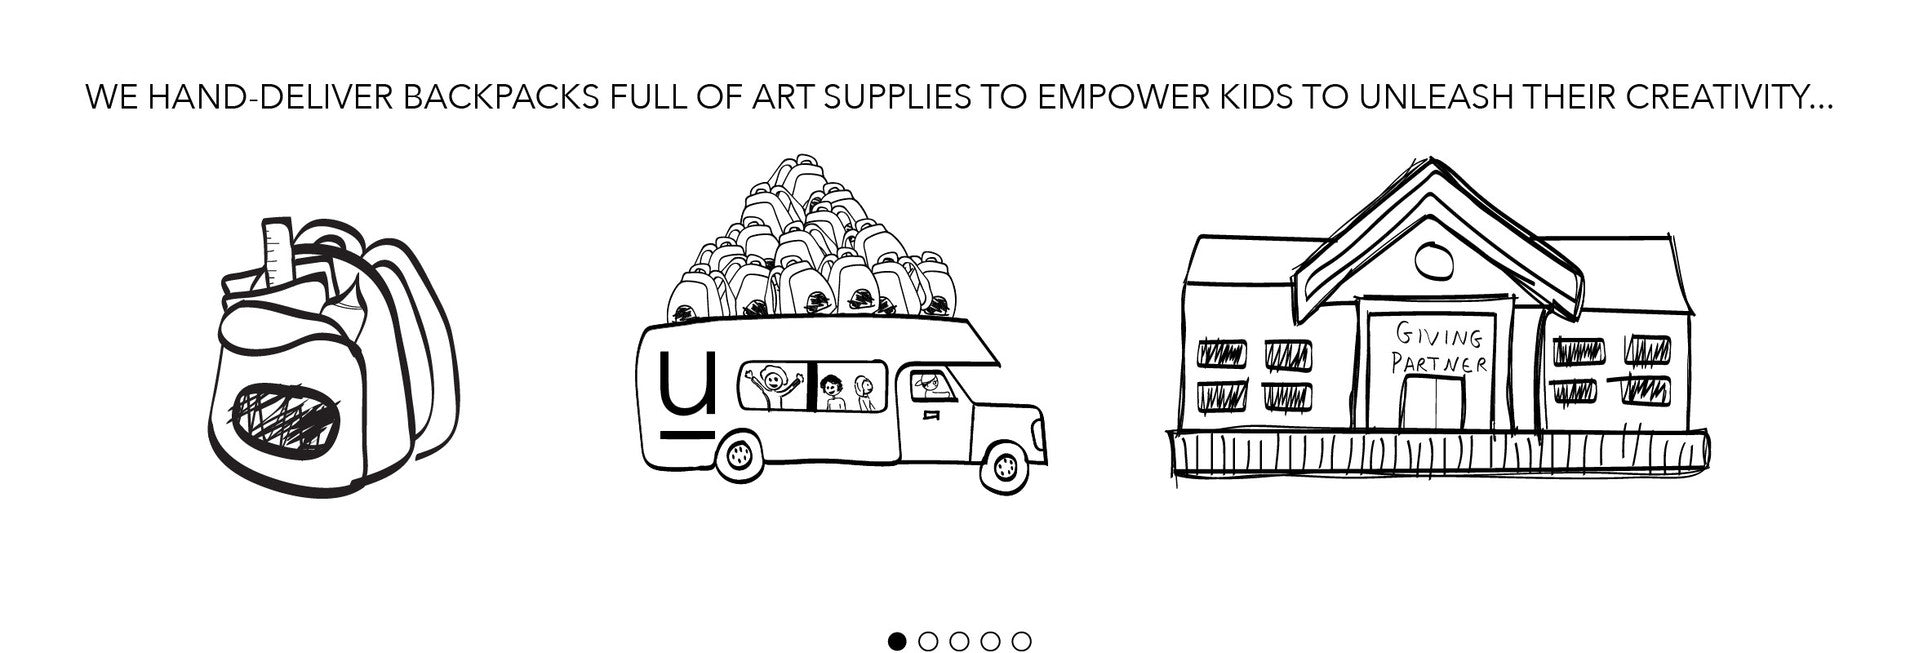 we hand-deliver backpacks full of art supplies to empower kids to unleash their creativity...